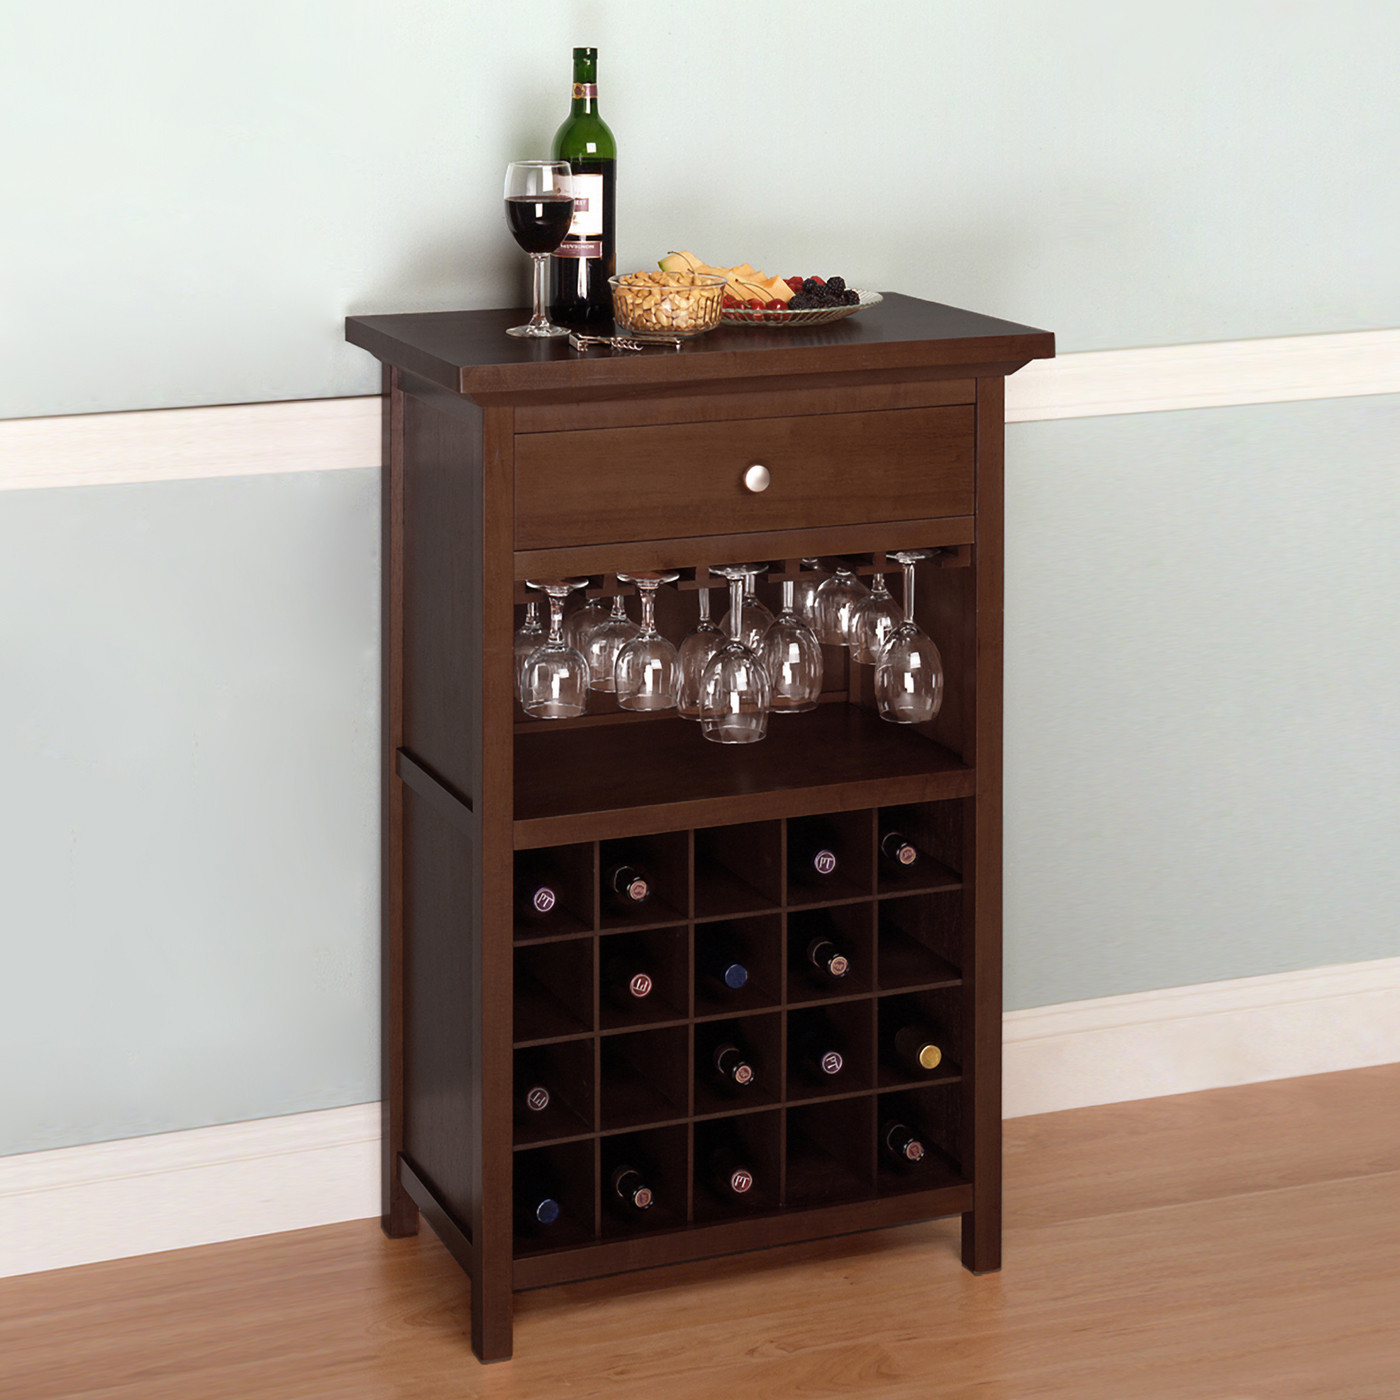 Best ideas about Cabinet With Wine Rack . Save or Pin Winsome Wood Cabinet Wine Rack Now.